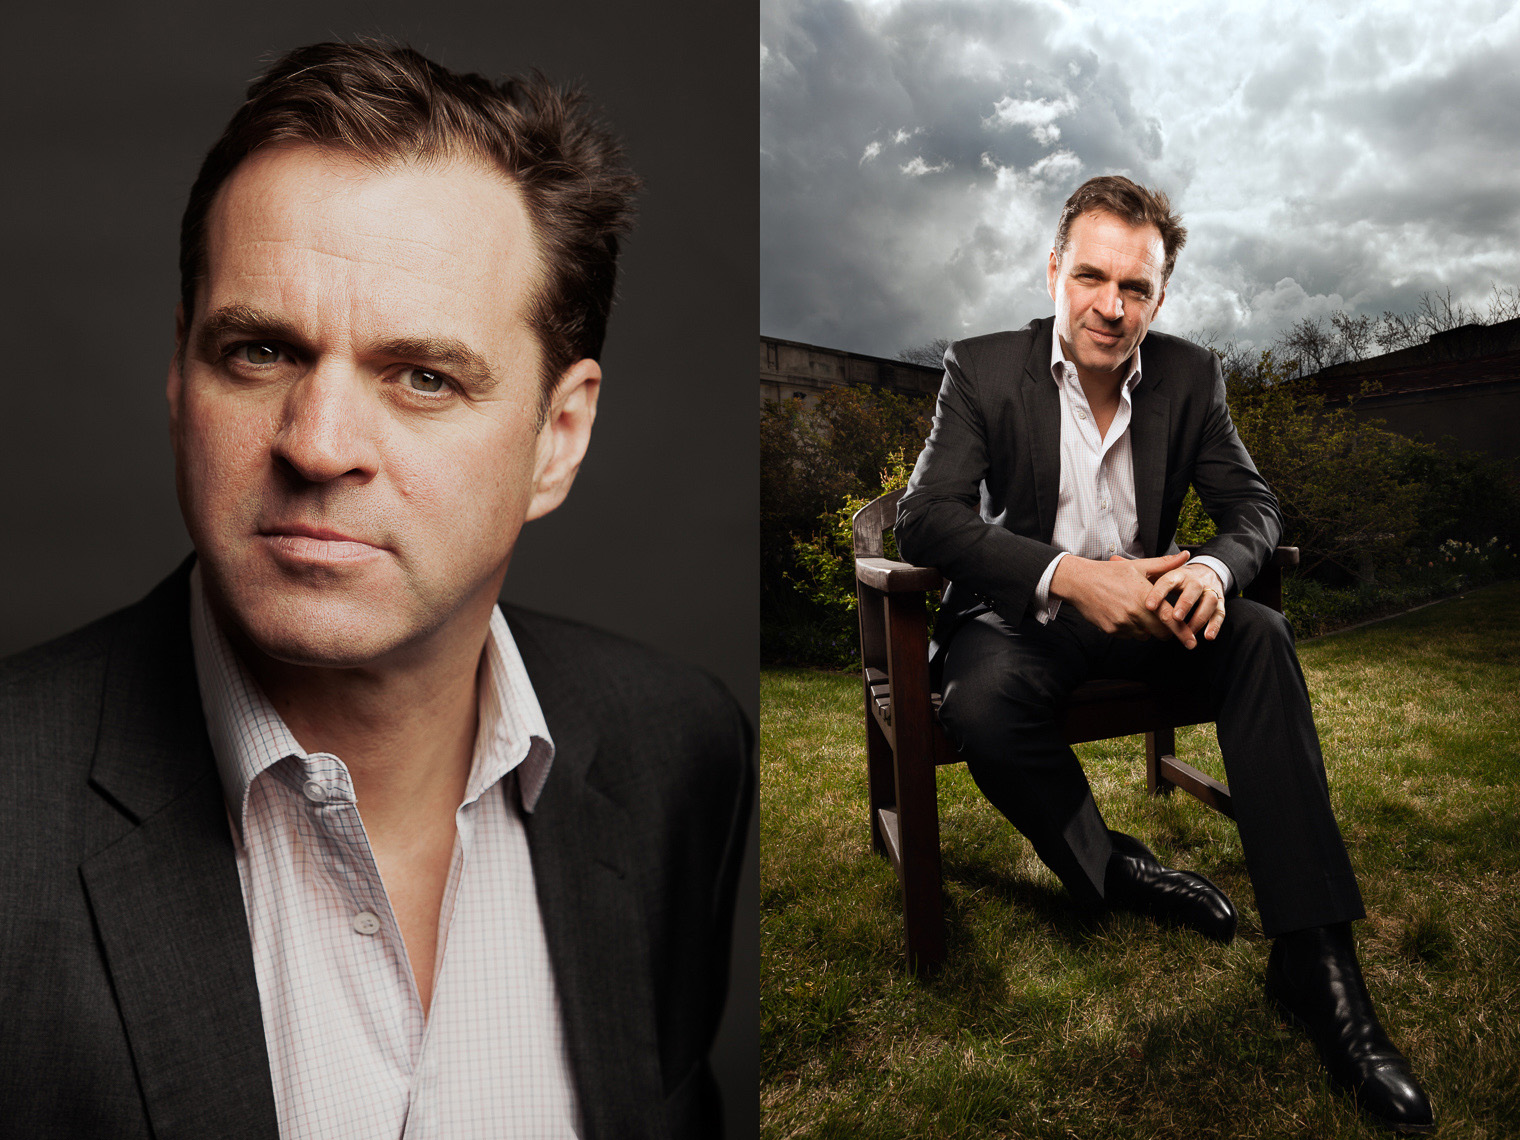 NIALL FERGUSON • HARVARD UNIVERSITY • Jason Grow Photography